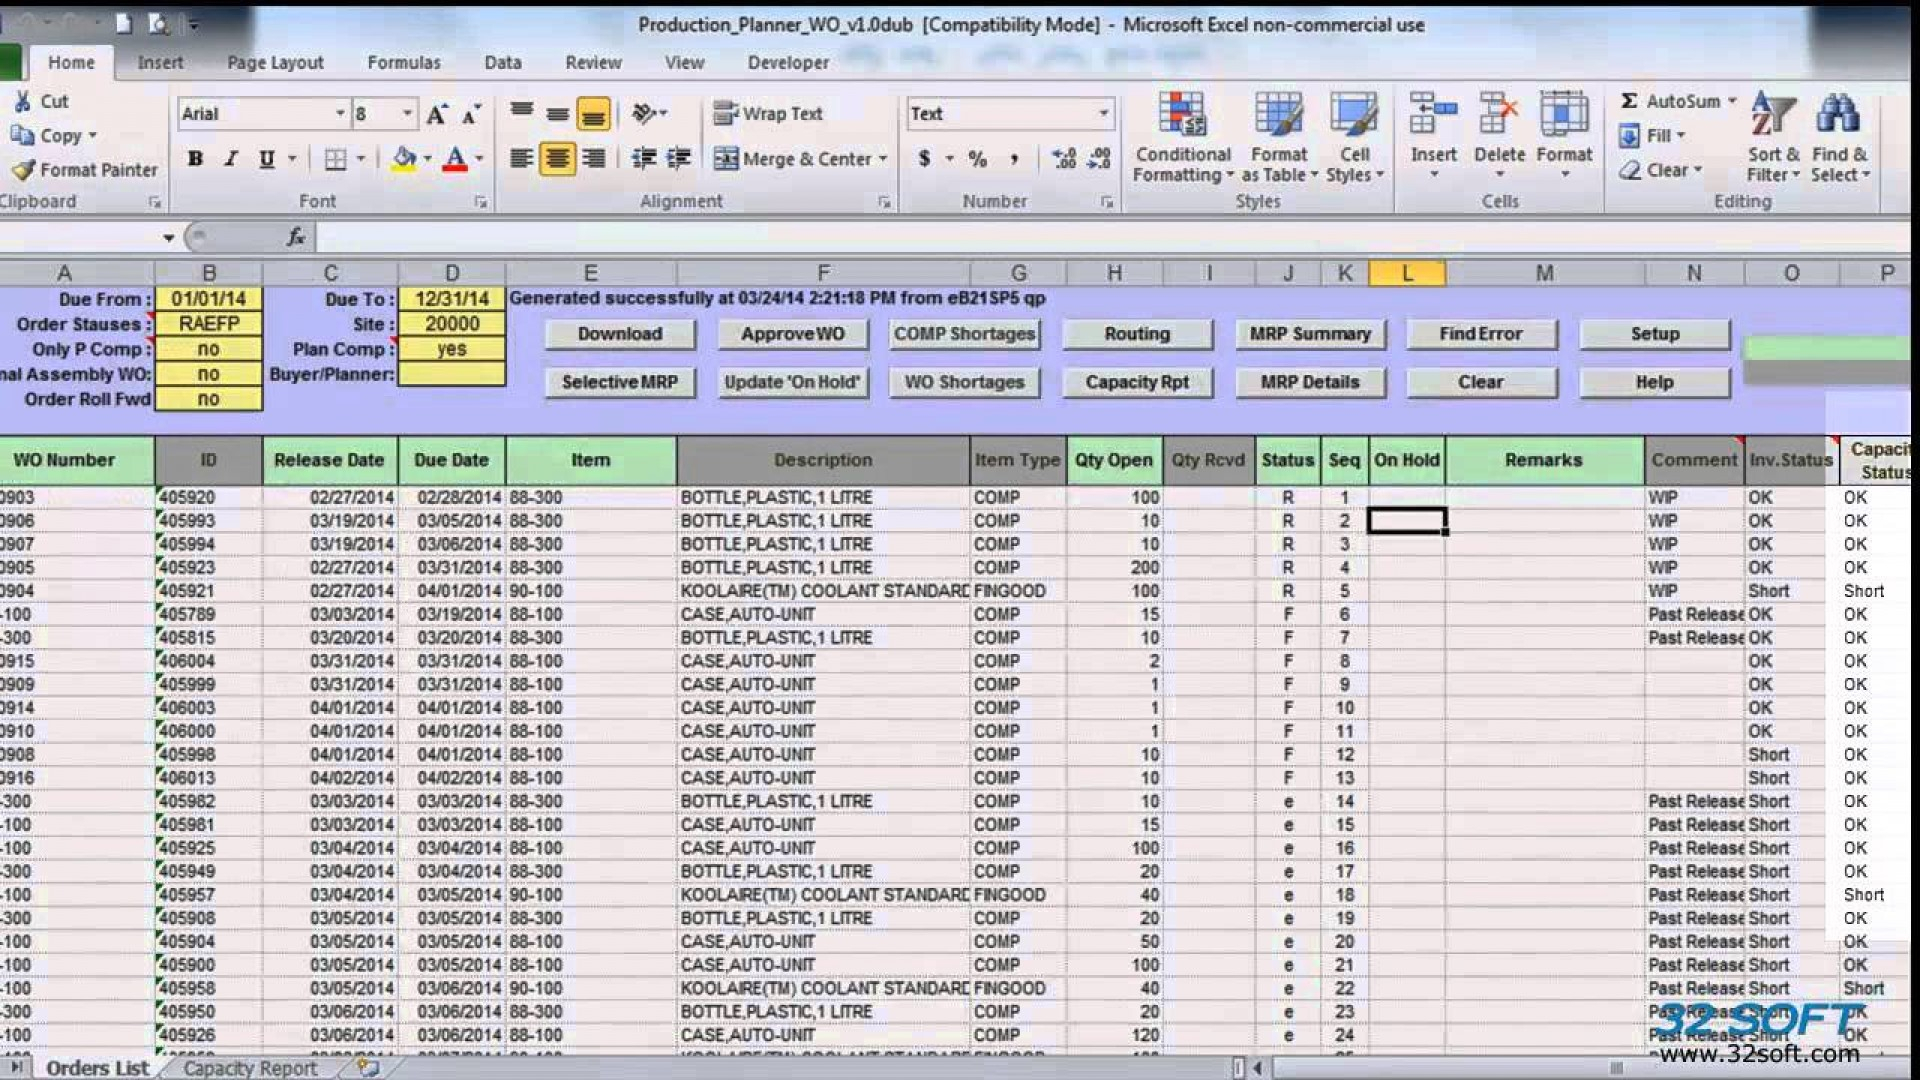 Work Order Tracking Spreadsheet Within 010 Production Schedule Template Excel Ideas Fresh Unique Scheduling